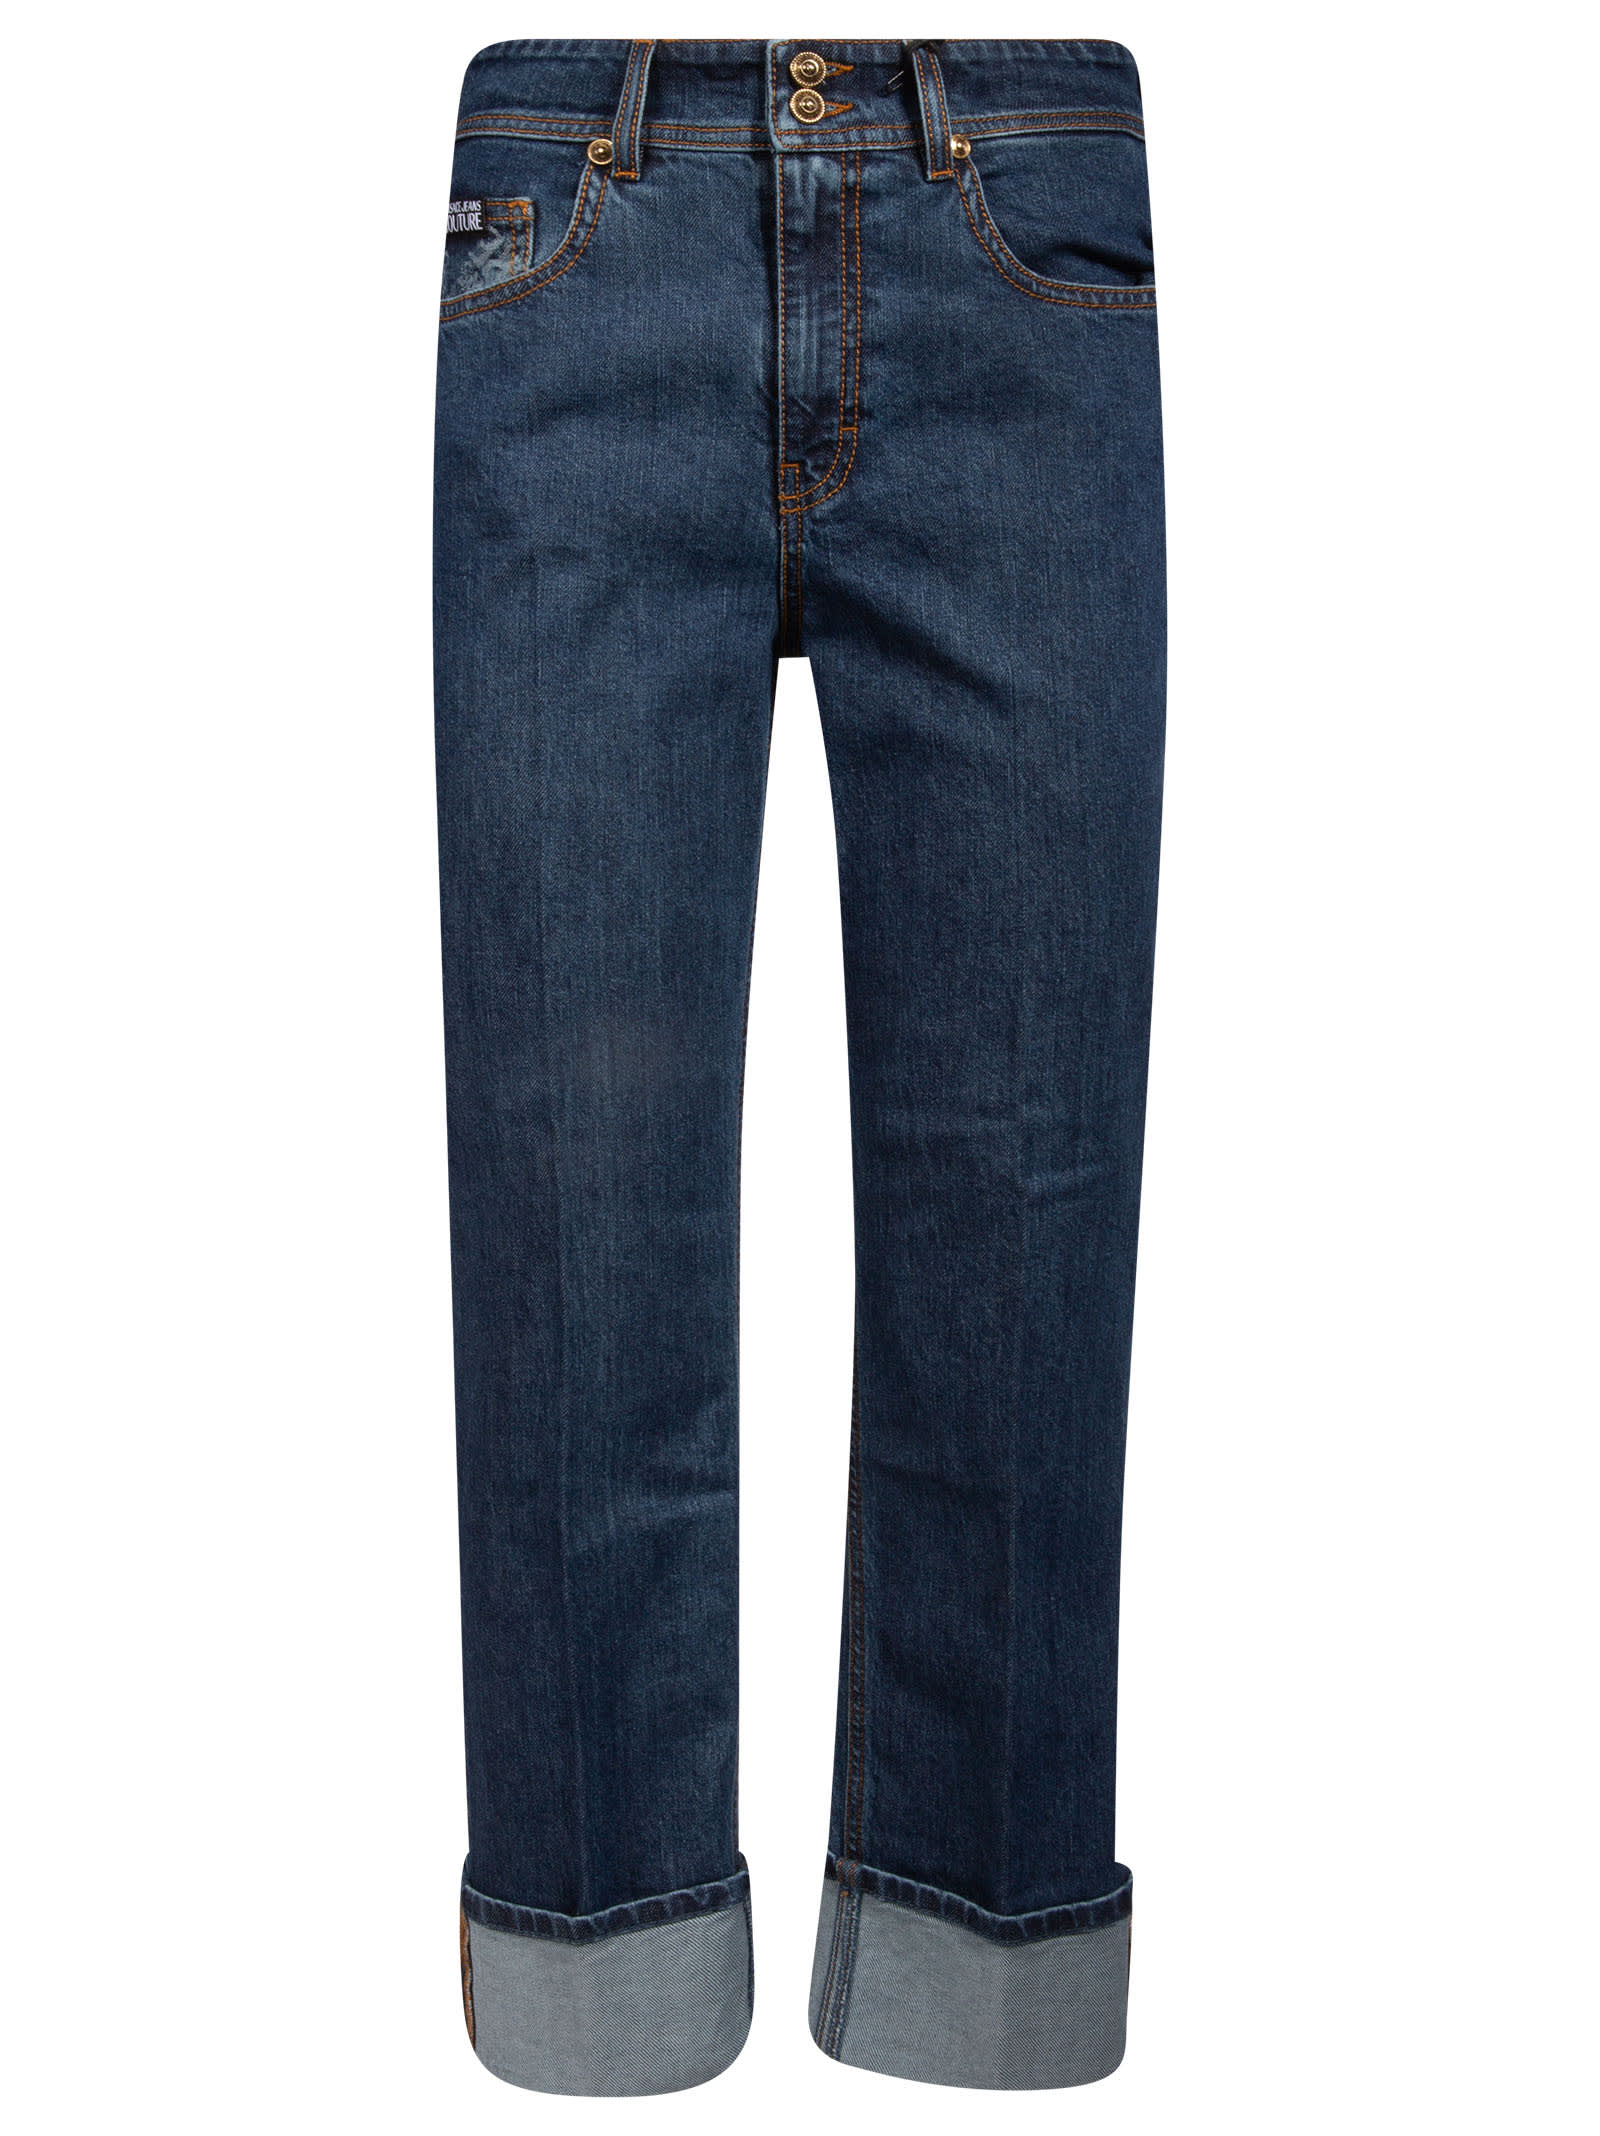 VERSACE JEANS COUTURE CLASSIC STRAIGHT JEANS